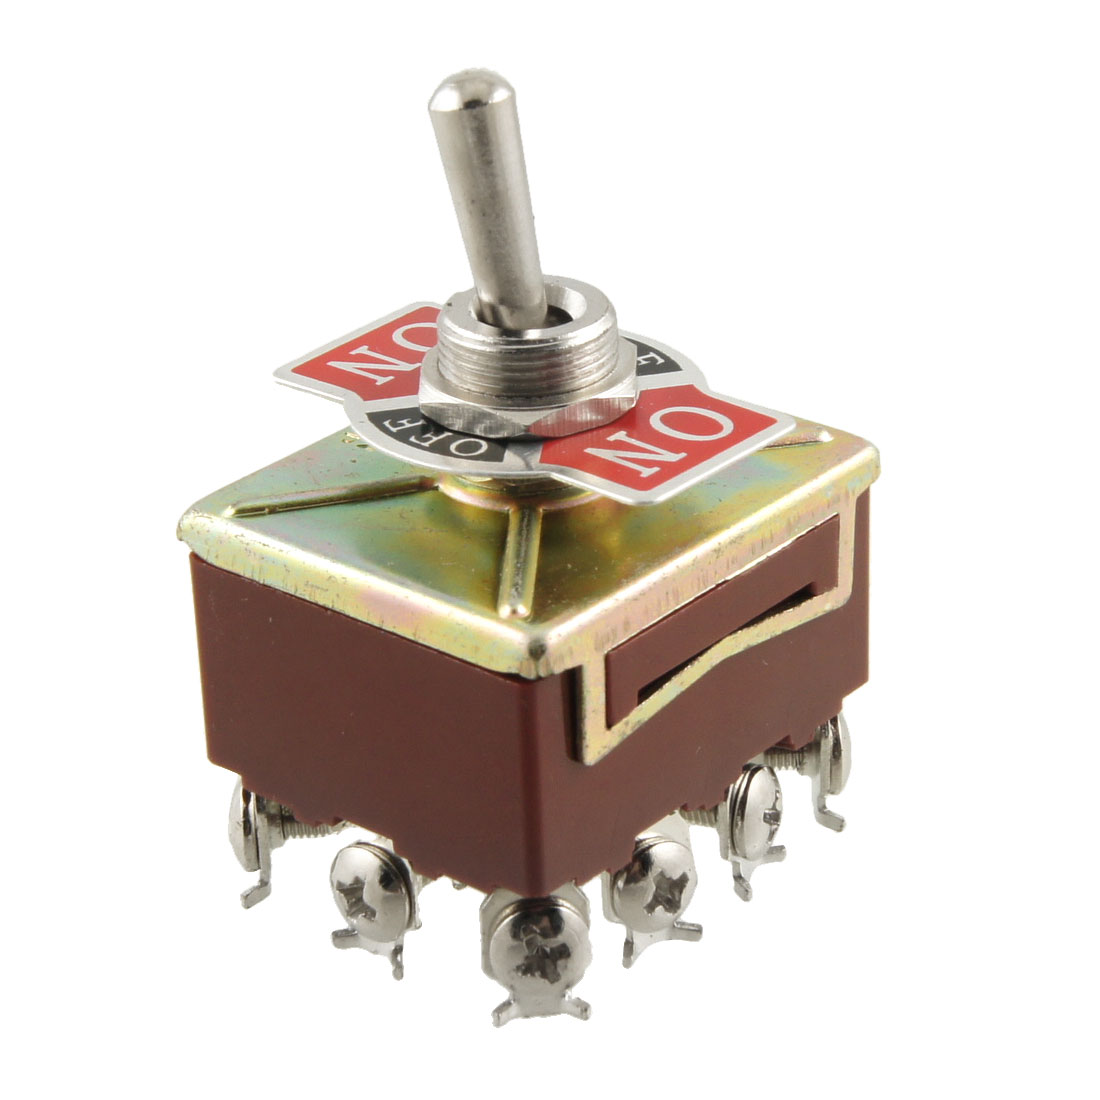 AC 15A/250V 10A/380V Screw Terminals On/Off/On 4PDT Toggle Switch